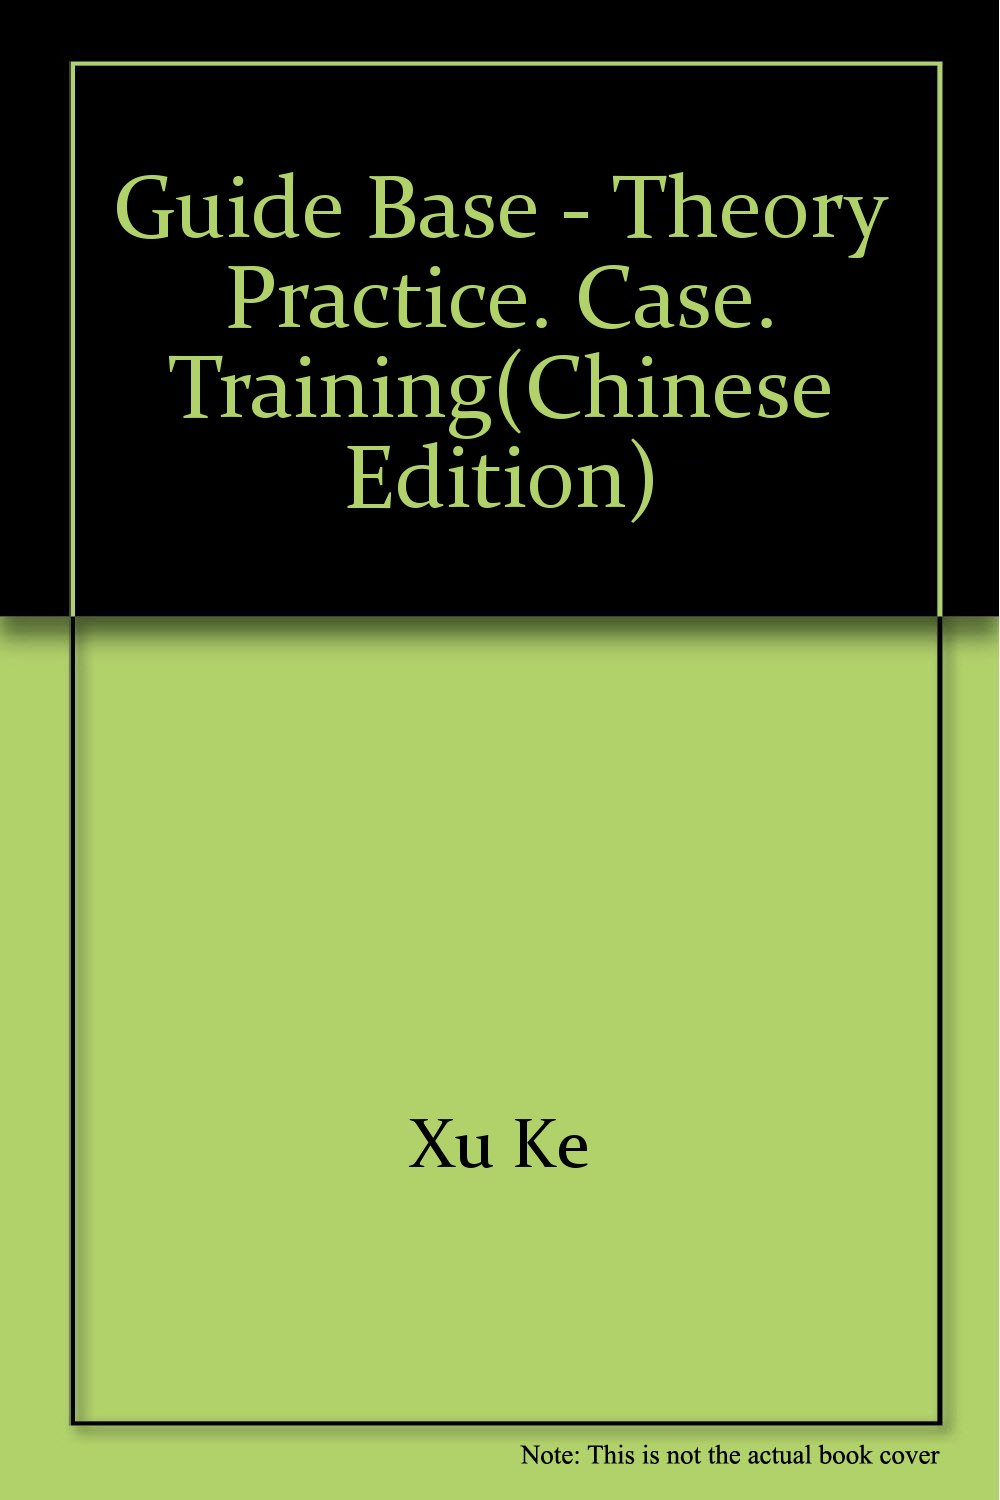 Guide base - theory practice. Case. Training(Chinese Edition) ebook